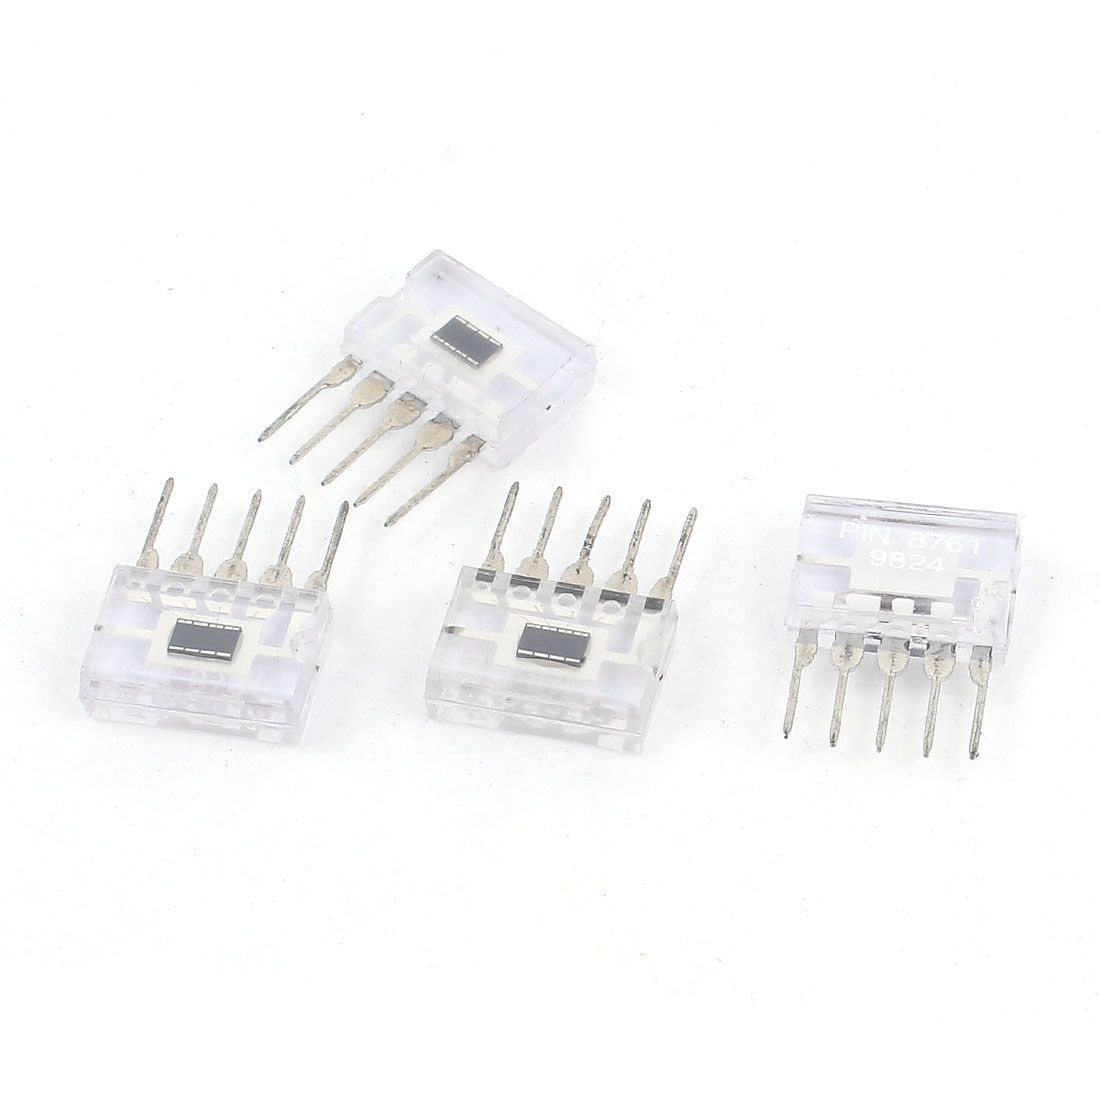 4 Pcs PIN8761 DIP Mount 5 Pins Photocell Photoelectric Infrared Sensor Receiver